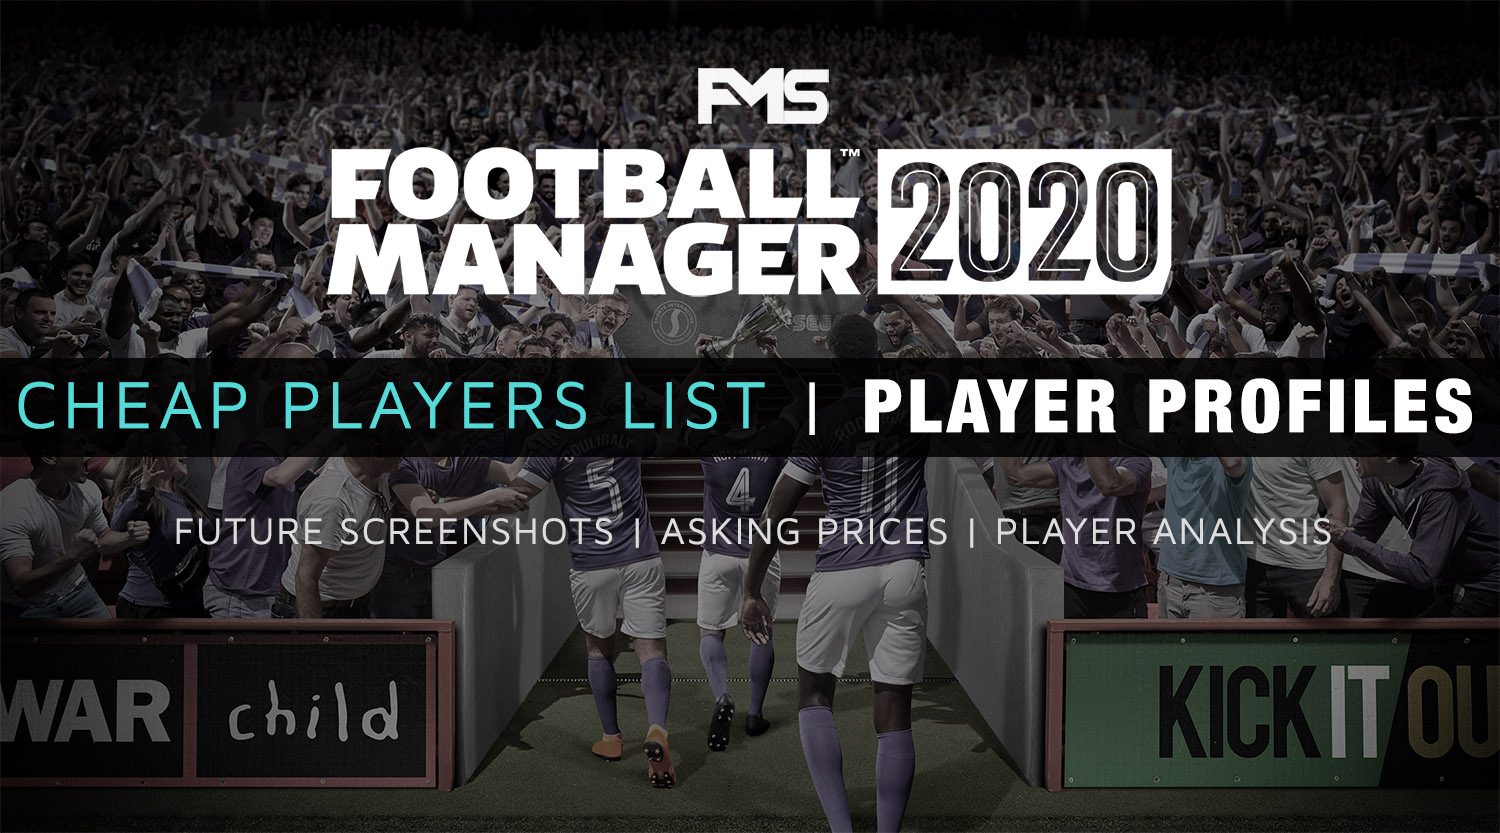 Best FM20 Cheap Players